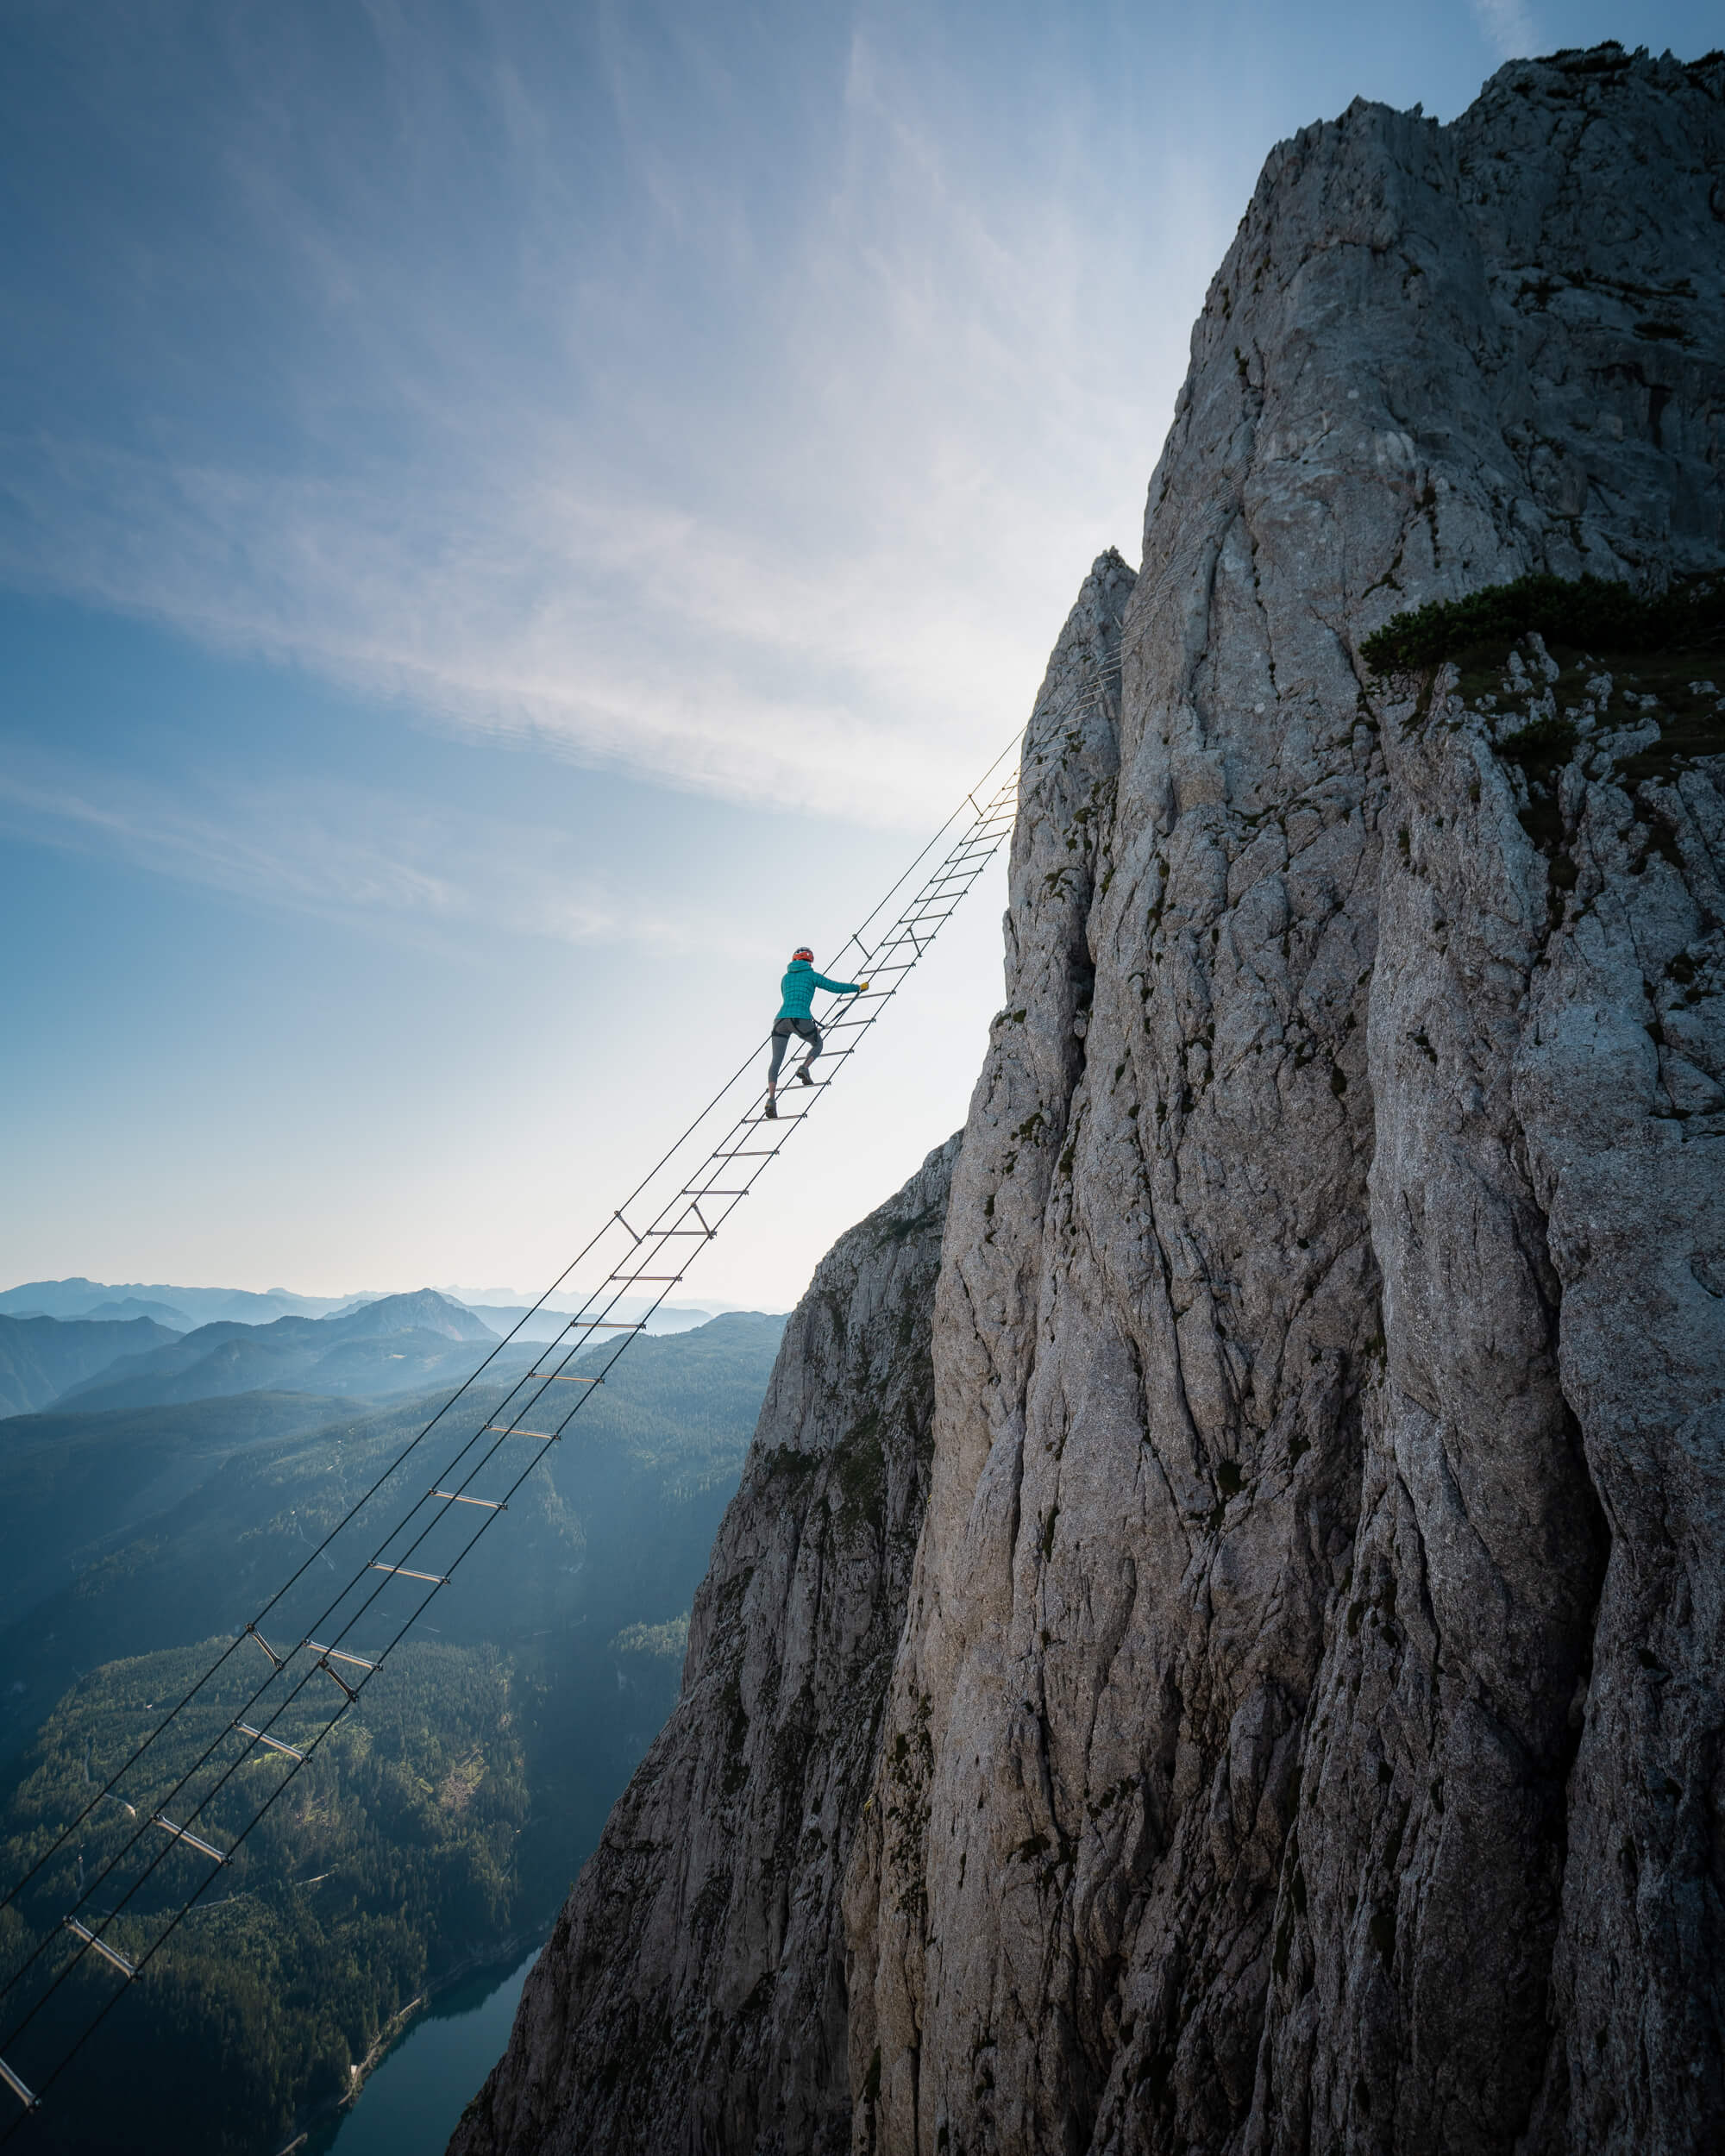 Austrias Ladder To Heaven is the ultimate adrenaline rush!